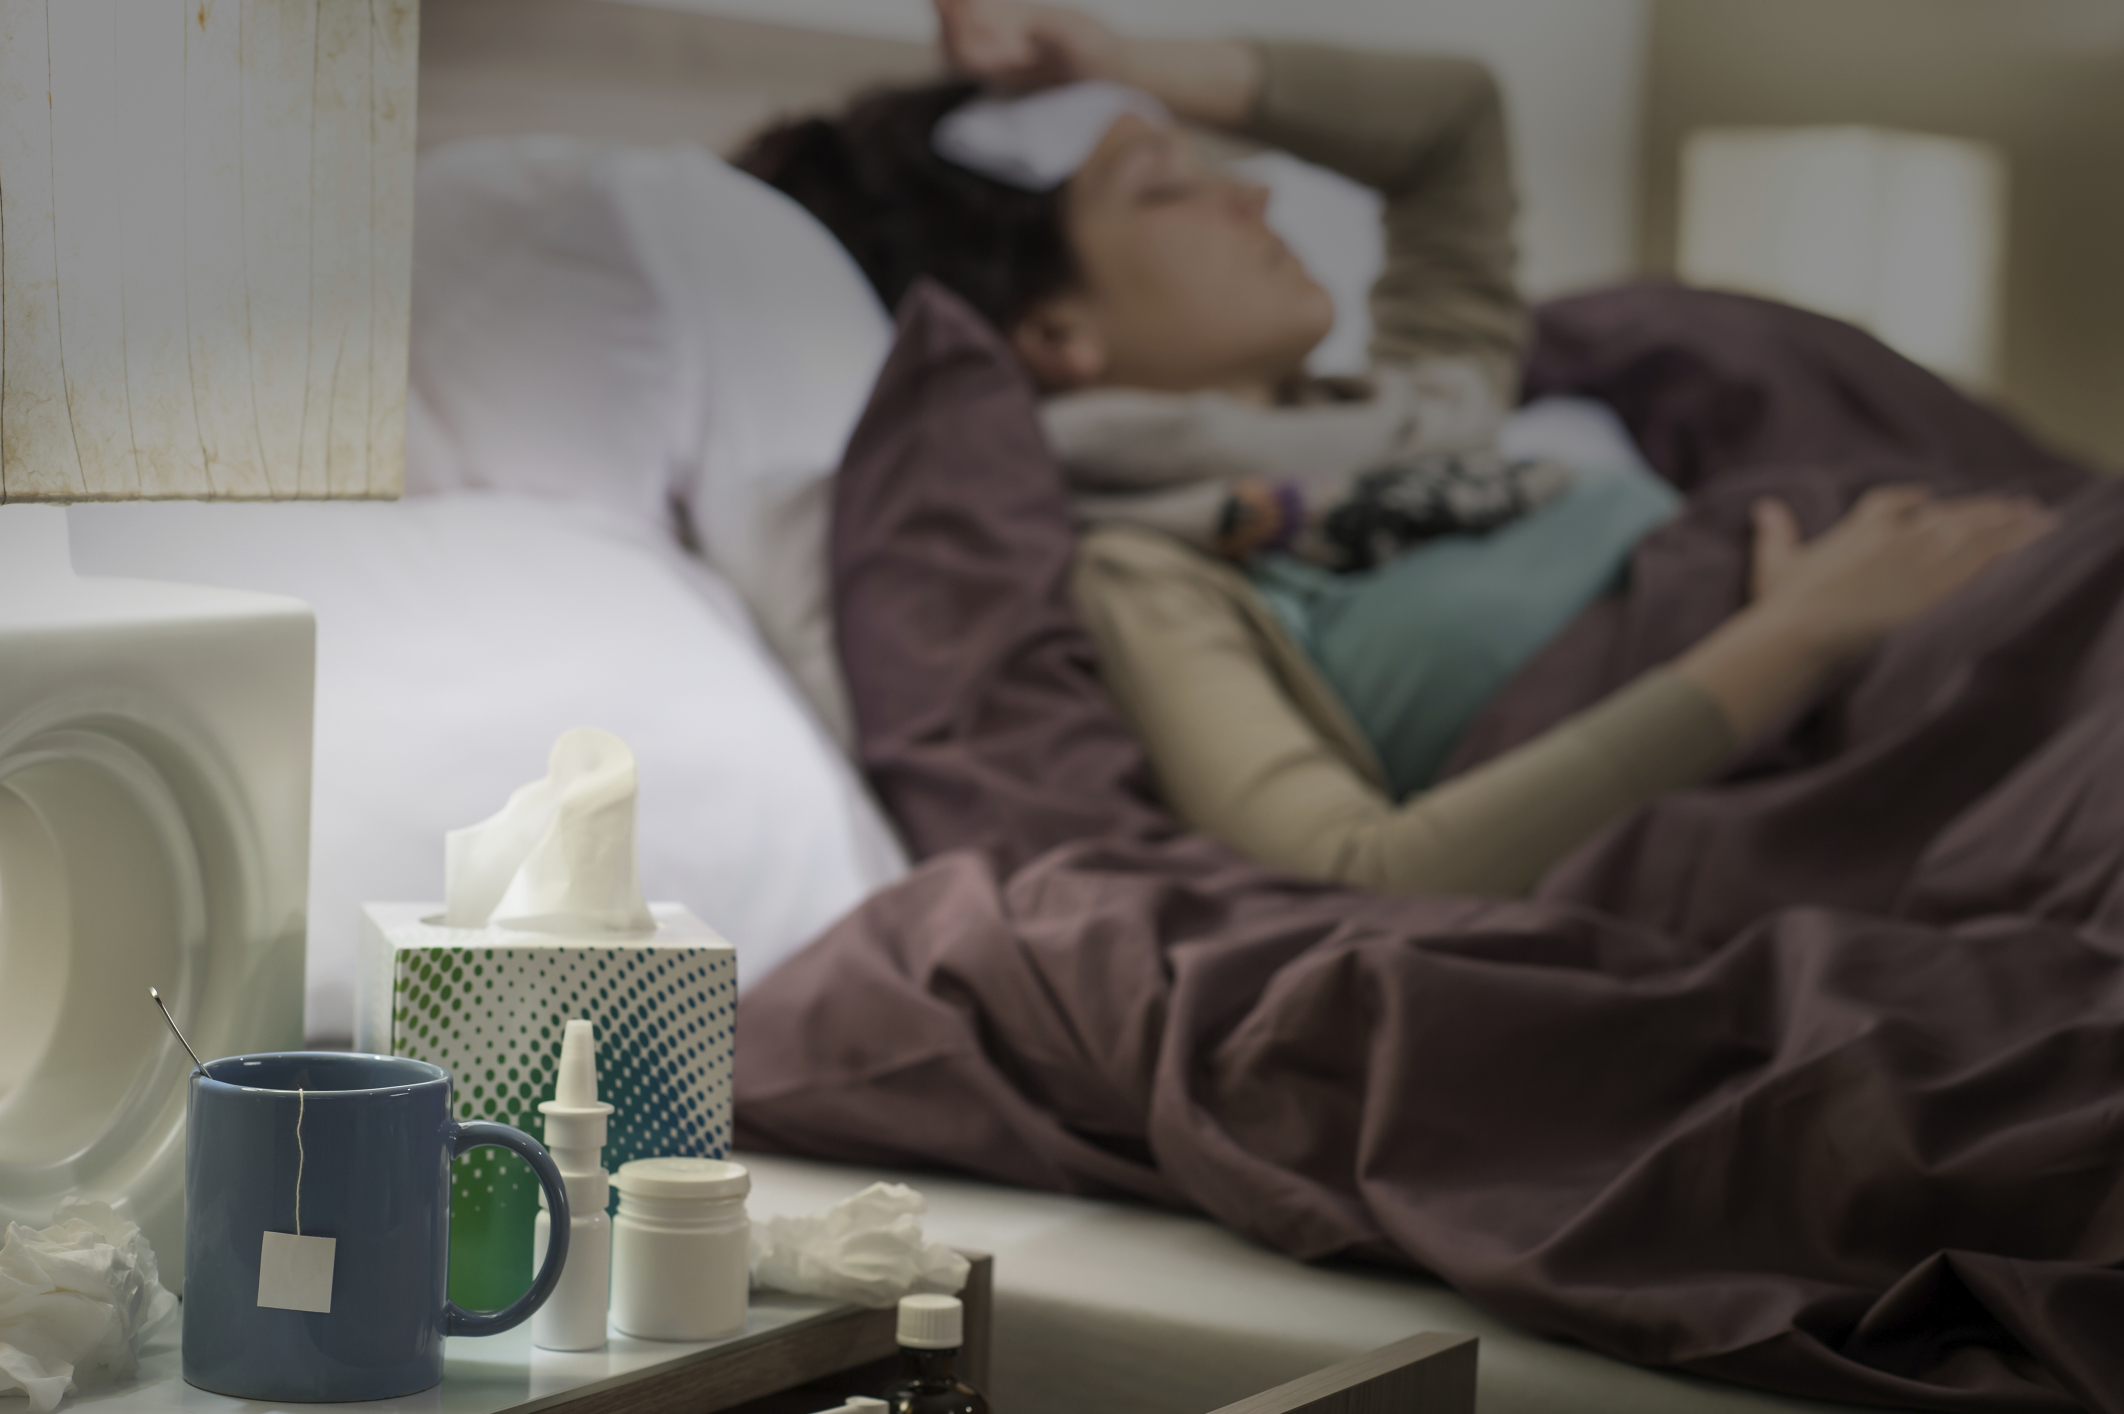 Flu prompts local hospitals to ban children from visiting